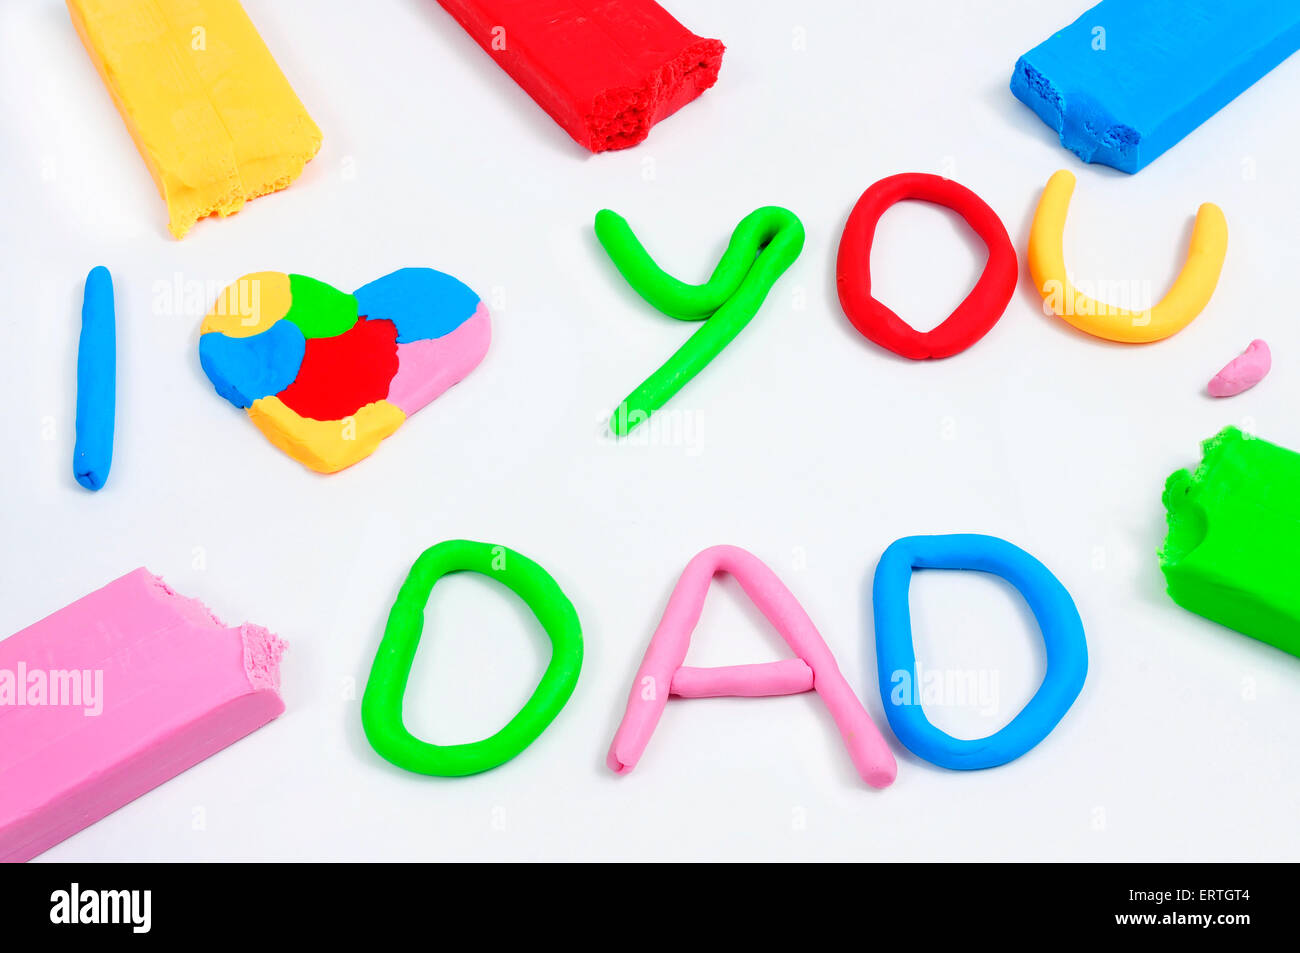 the text I love you dad made from modeling clay of different colors - Stock Image